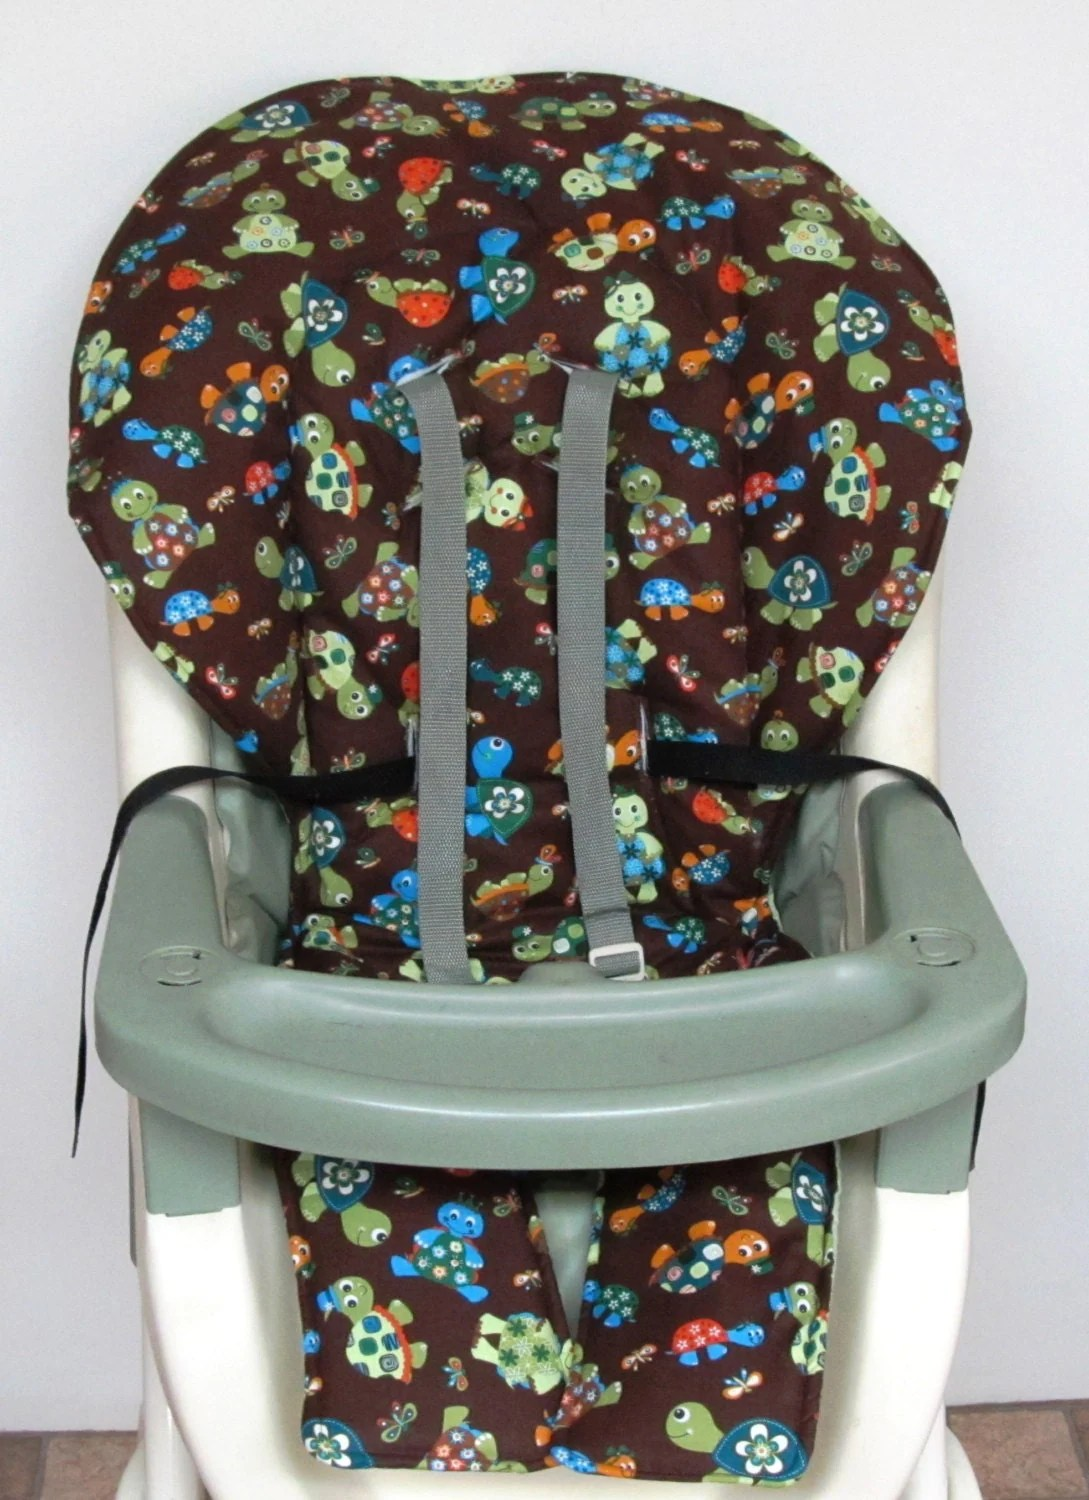 Chair Pad Covers Graco High Chair Cover Chair Cushion Kids And Baby Feeding